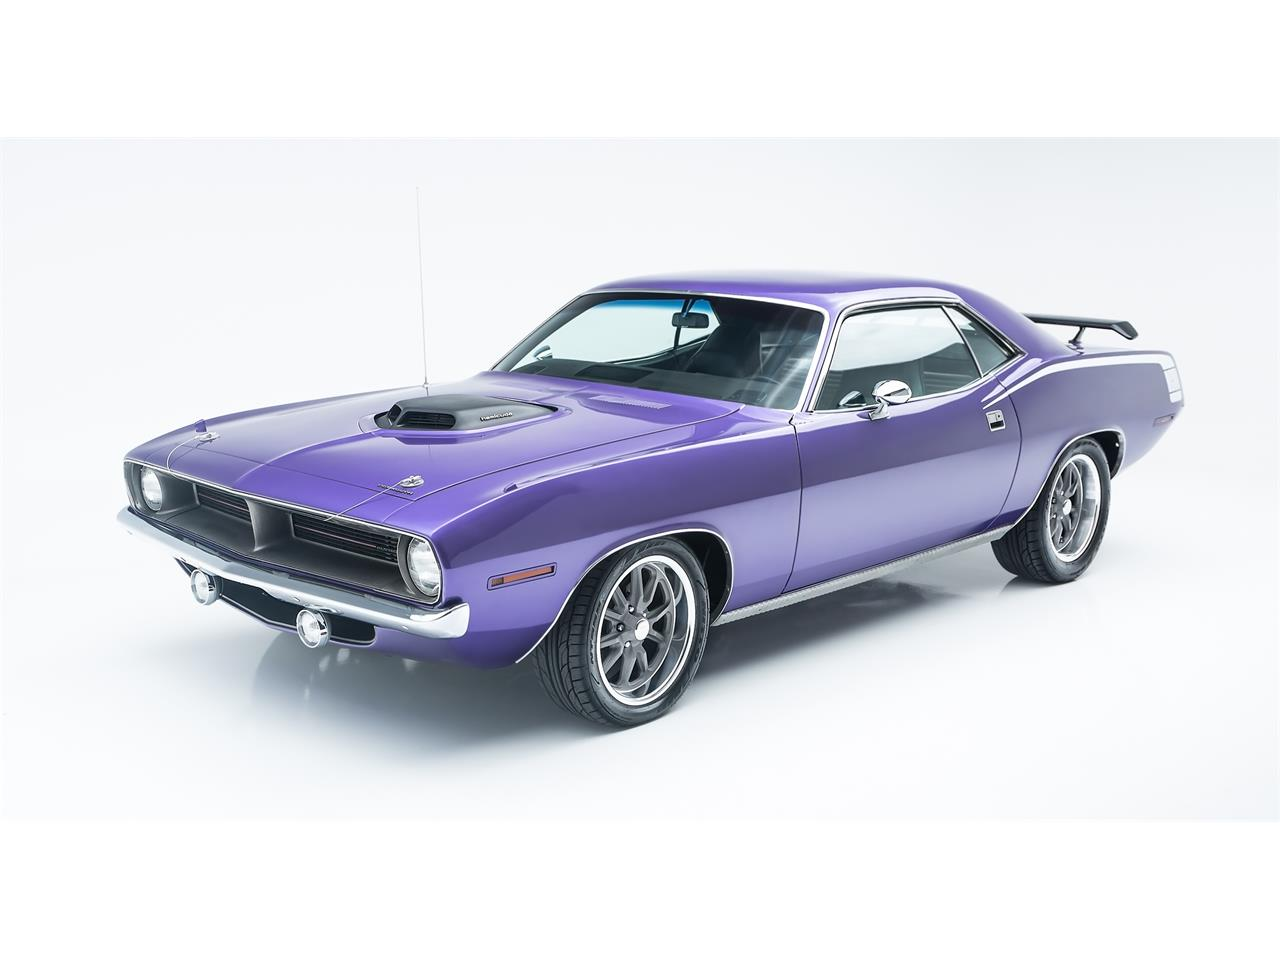 1970 Plymouth Hemi Cuda For Sale Cc 1180354 Barracuda Large Picture Of 70 Parm